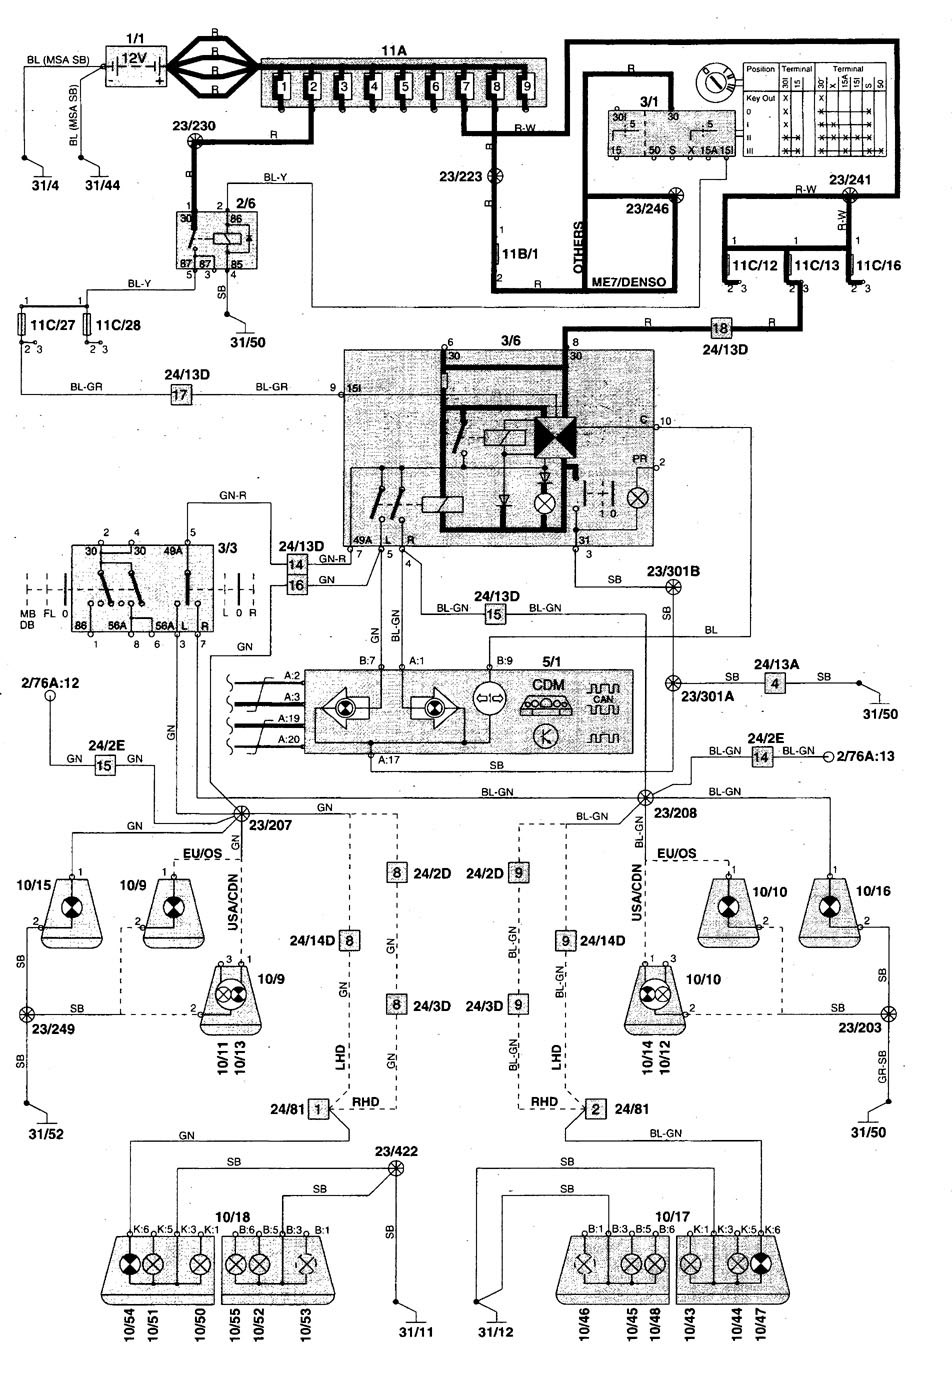 98 Volvo S70 Dash Switch Wiring - Starter Relay Wiring Diagram For Vw -  hazzardzz.tukune.jeanjaures37.fr | Volvo 850 Fog Light Wiring Diagram |  | Wiring Diagram Resource